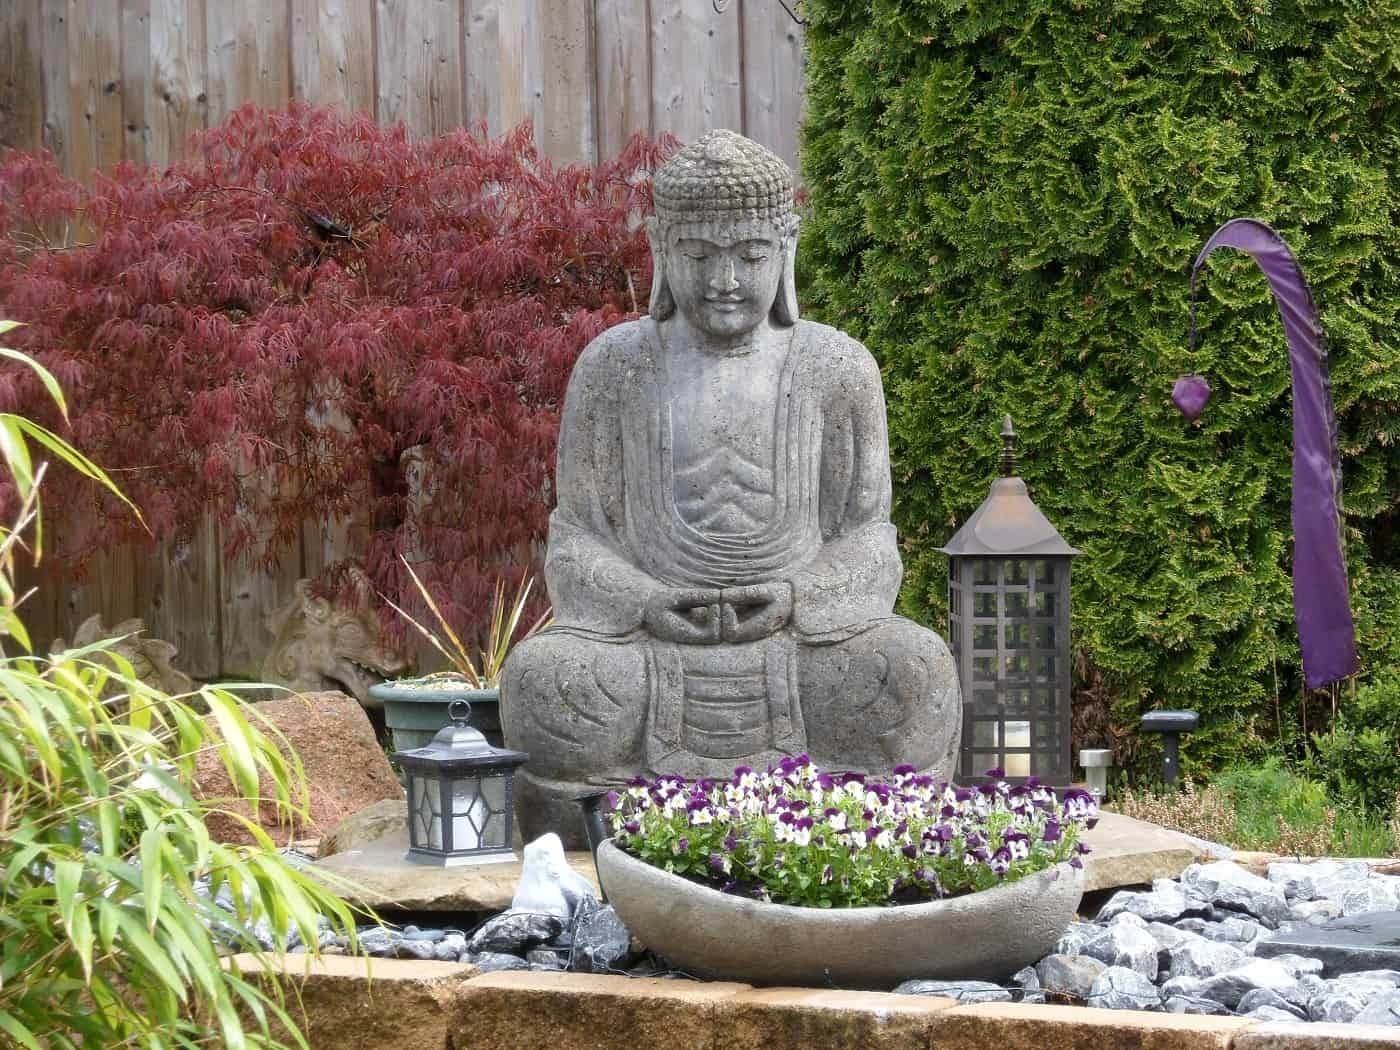 Buddha statue, lanterns and flowers outdoors - 4 basic stages of meditation